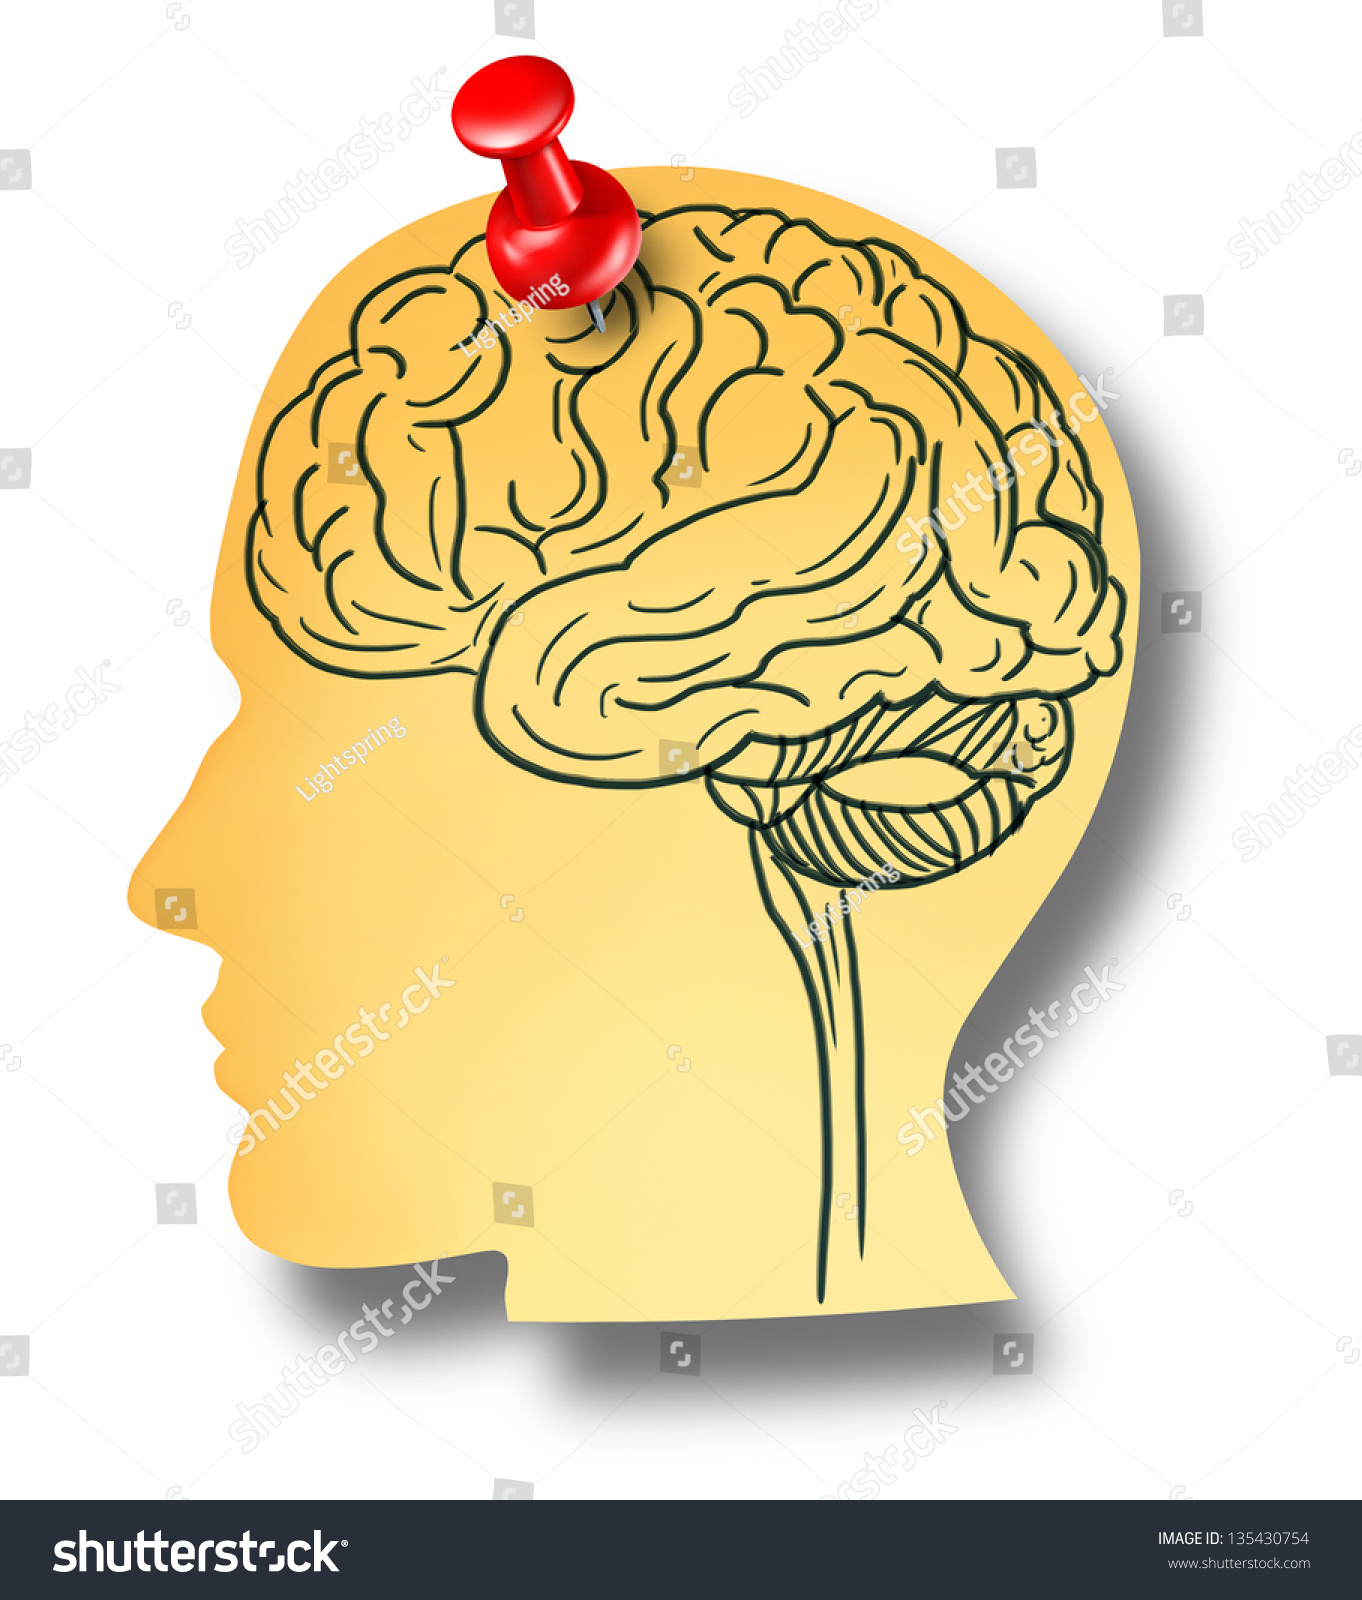 Brain Reminder Memory Loss Concept Dementia Stock Illustration ...